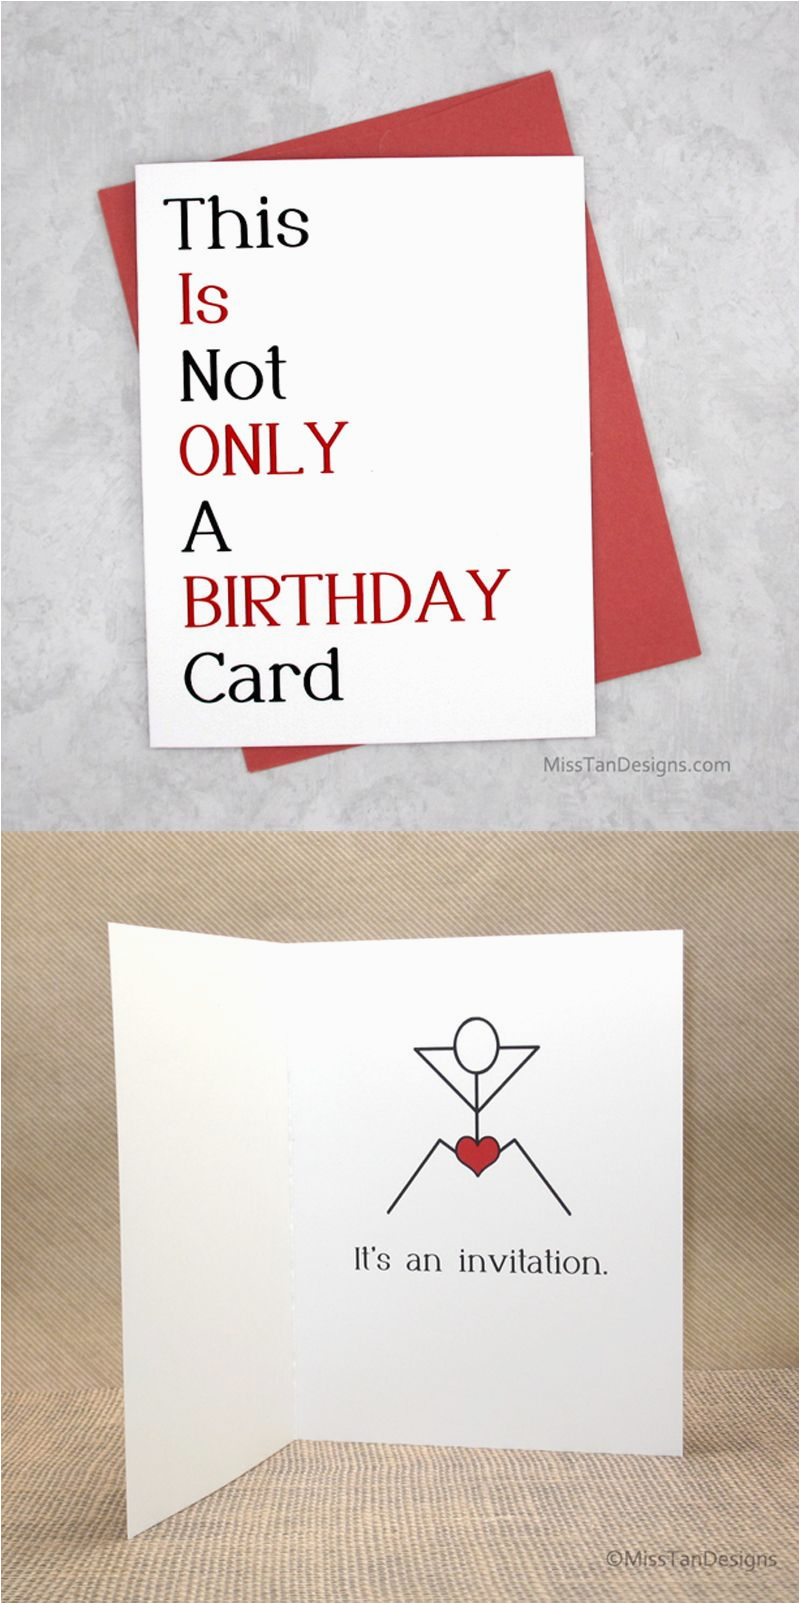 Memorable Birthday Gifts for Husband Boyfriend Birthday Cards Not Only Funny Gift Sexy